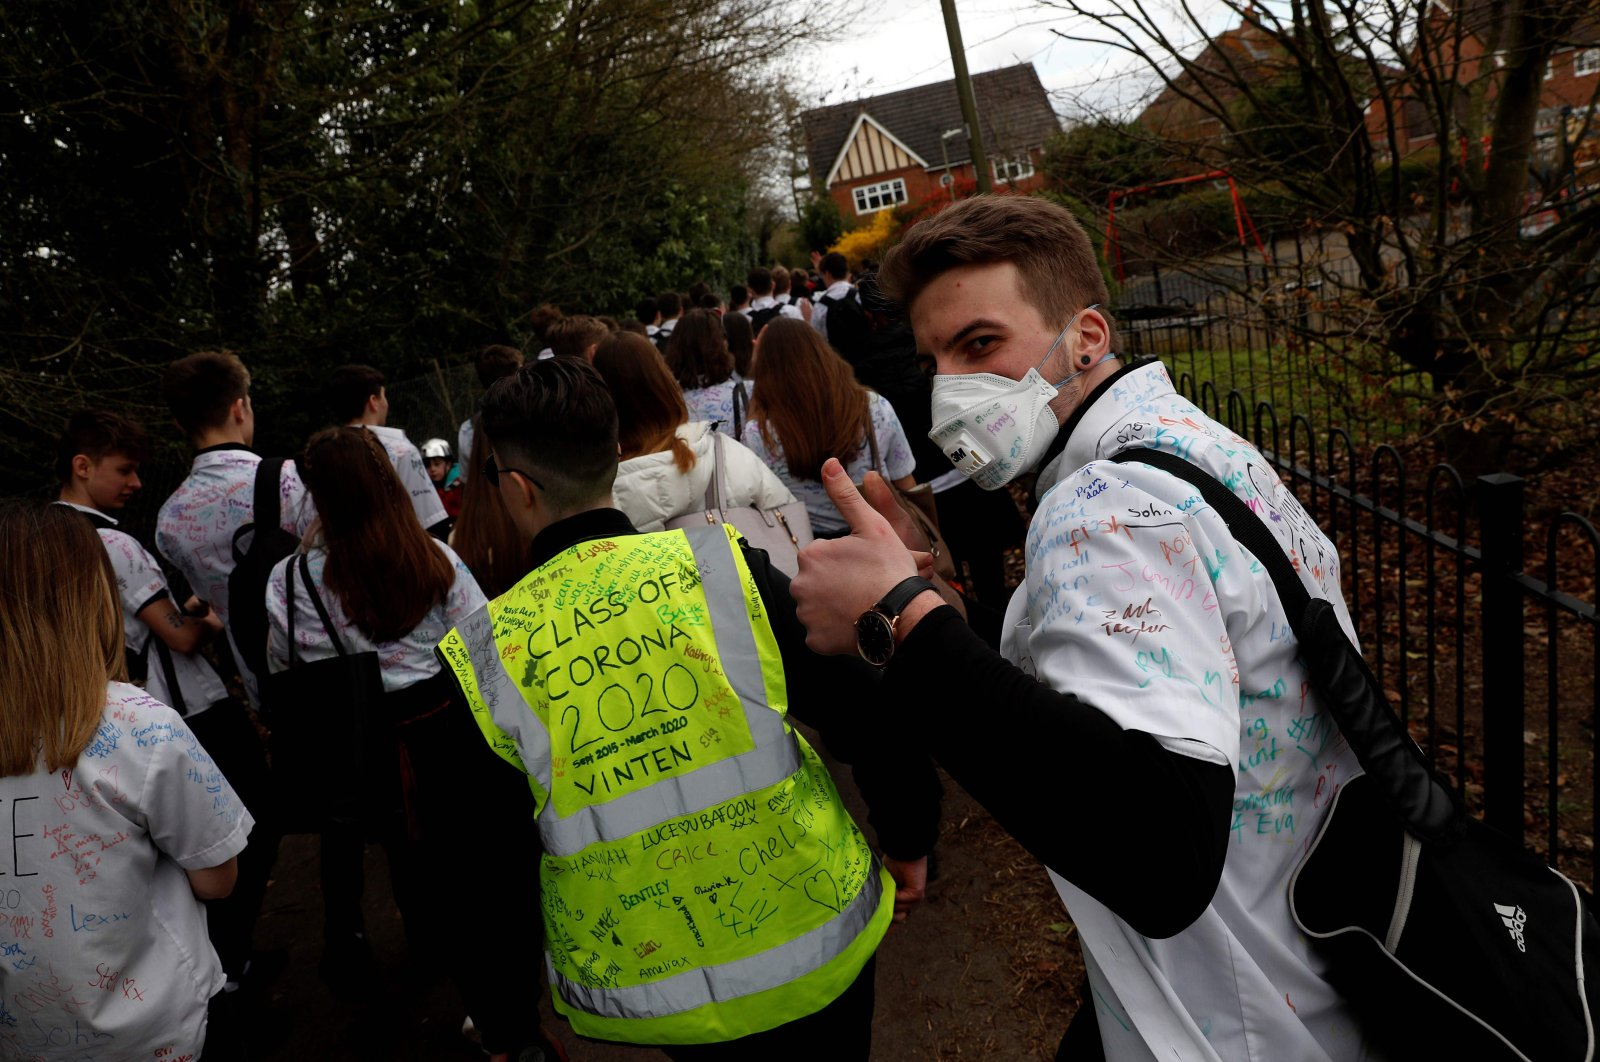 Year 11 pupils, some with graffiti-covered shirts reading 'Survivor 2020' and 'Class of Corona 2020' react as they leave a secondary school in Odiham, west of London on March 20, 2020.